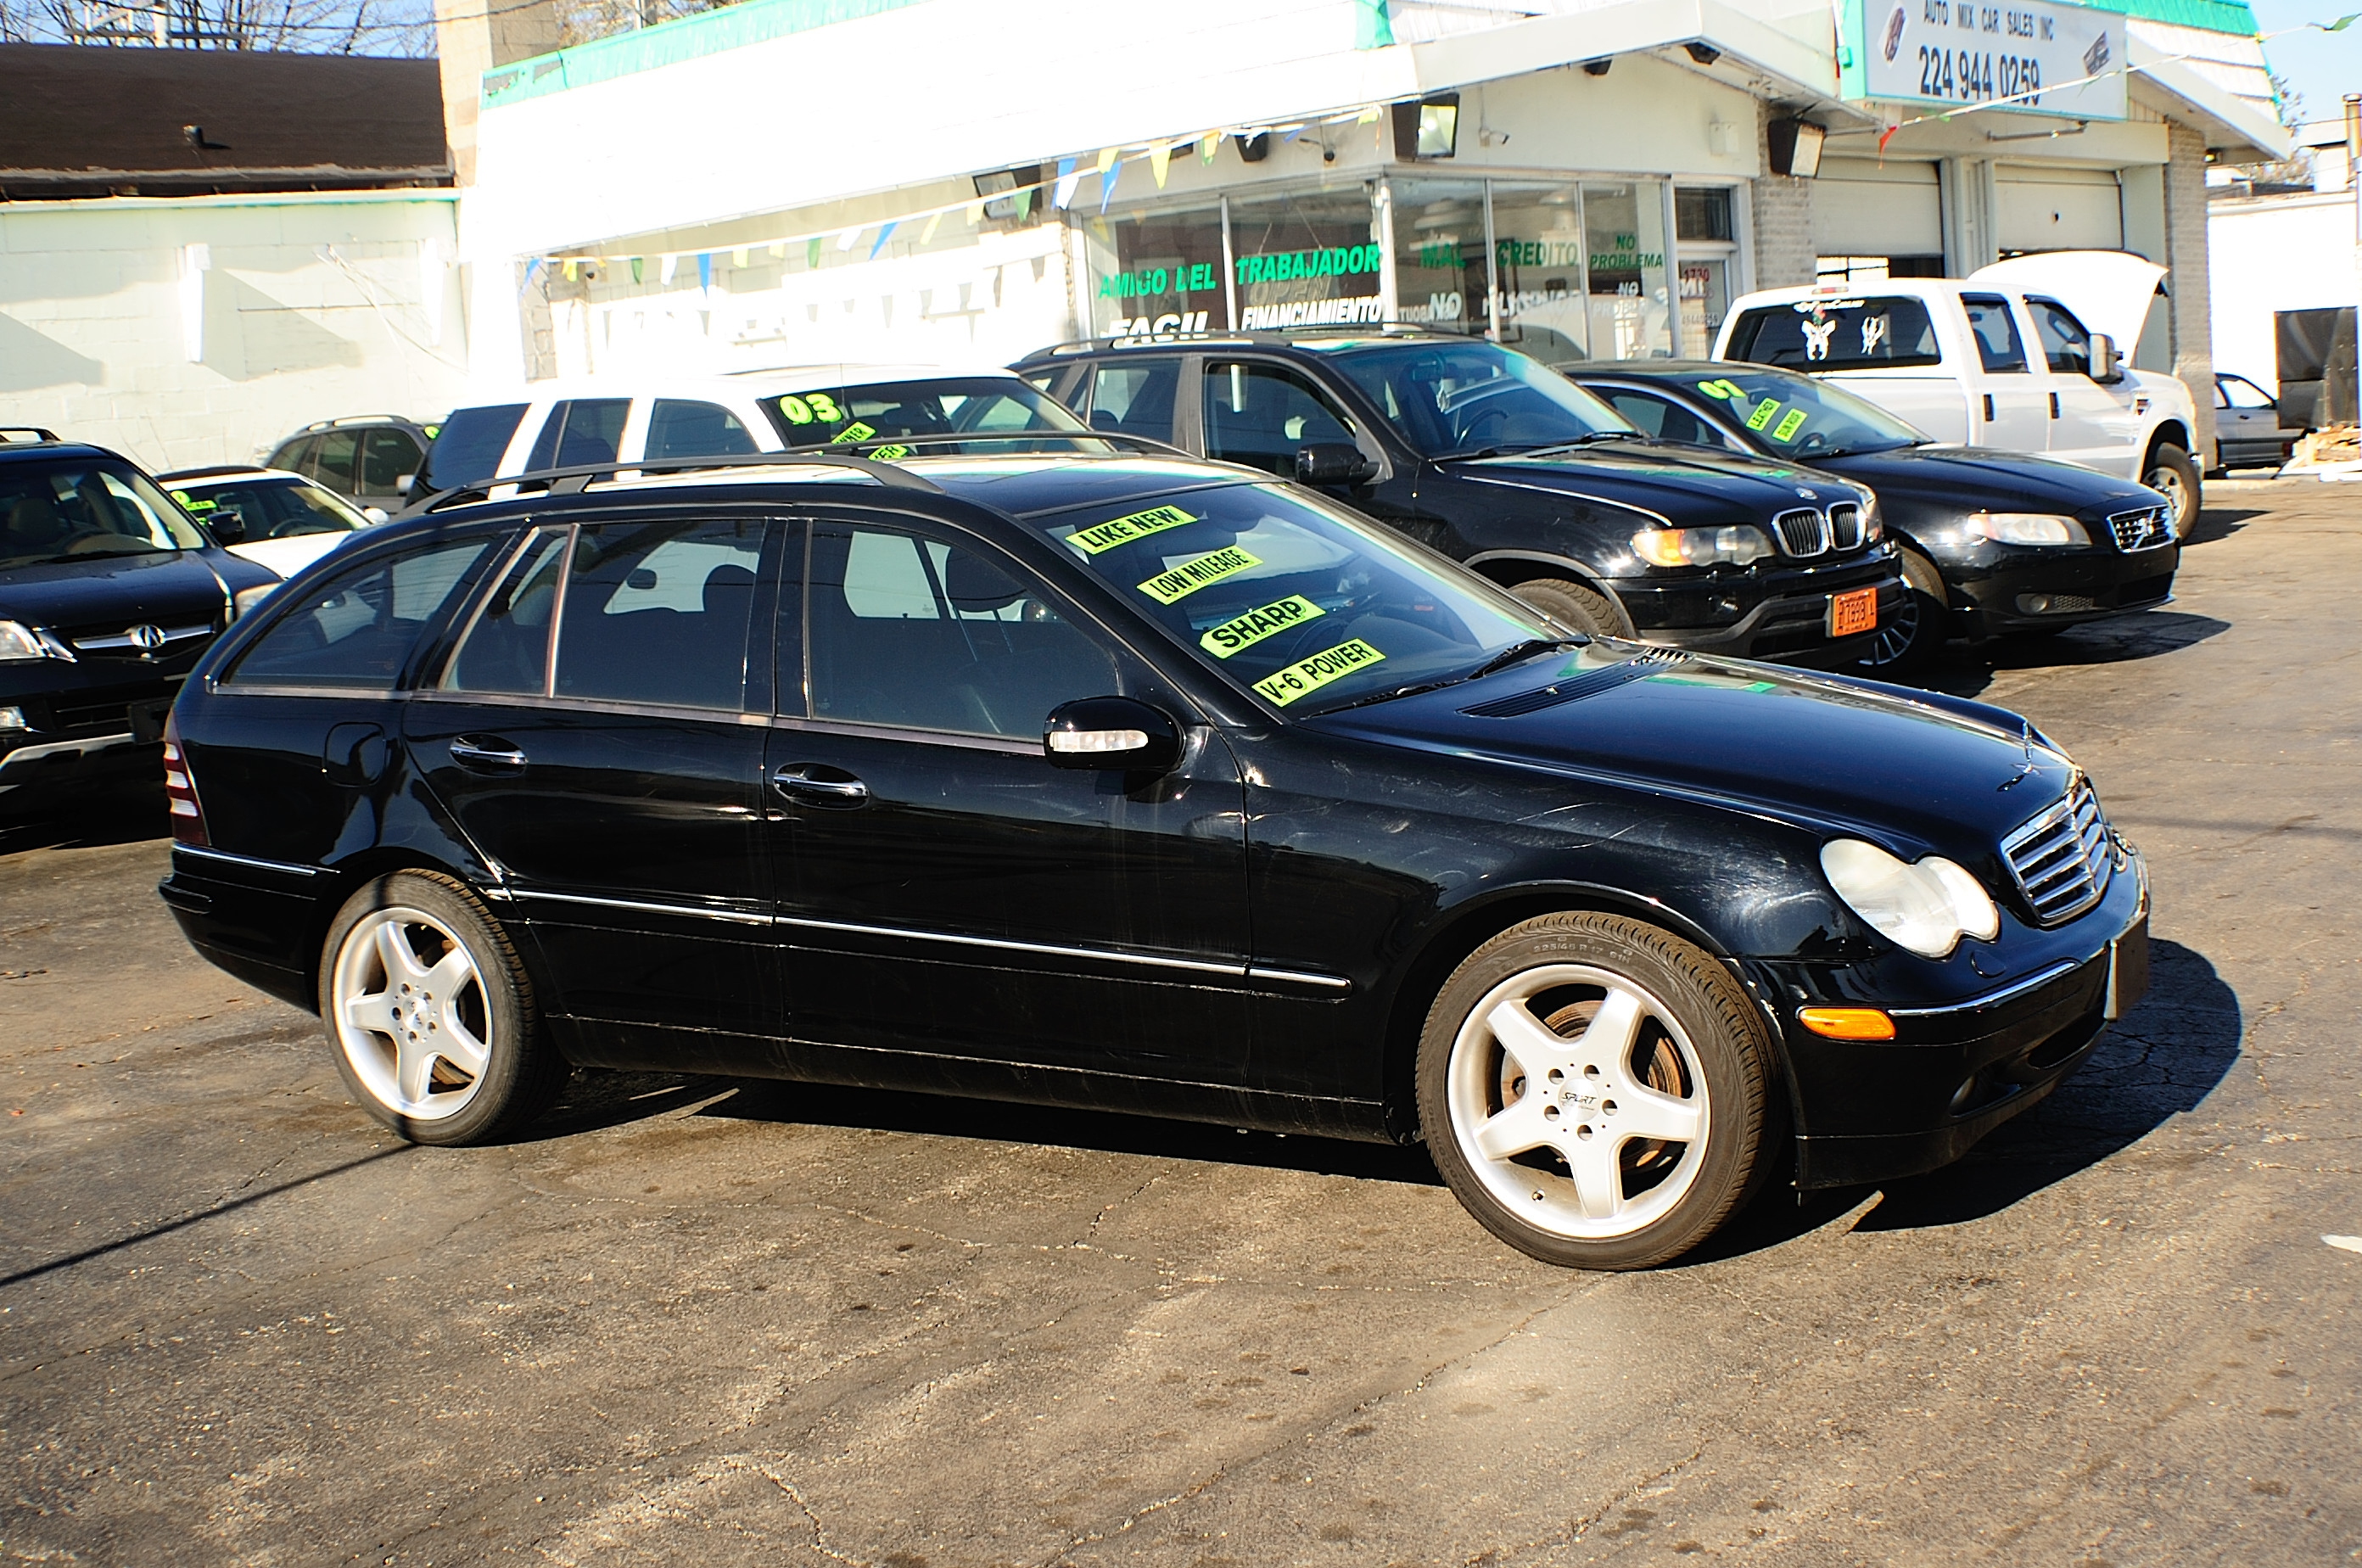 2002 Mercedes C320 Black 4Dr Wagon used car sale Antioch Zion Waukegan